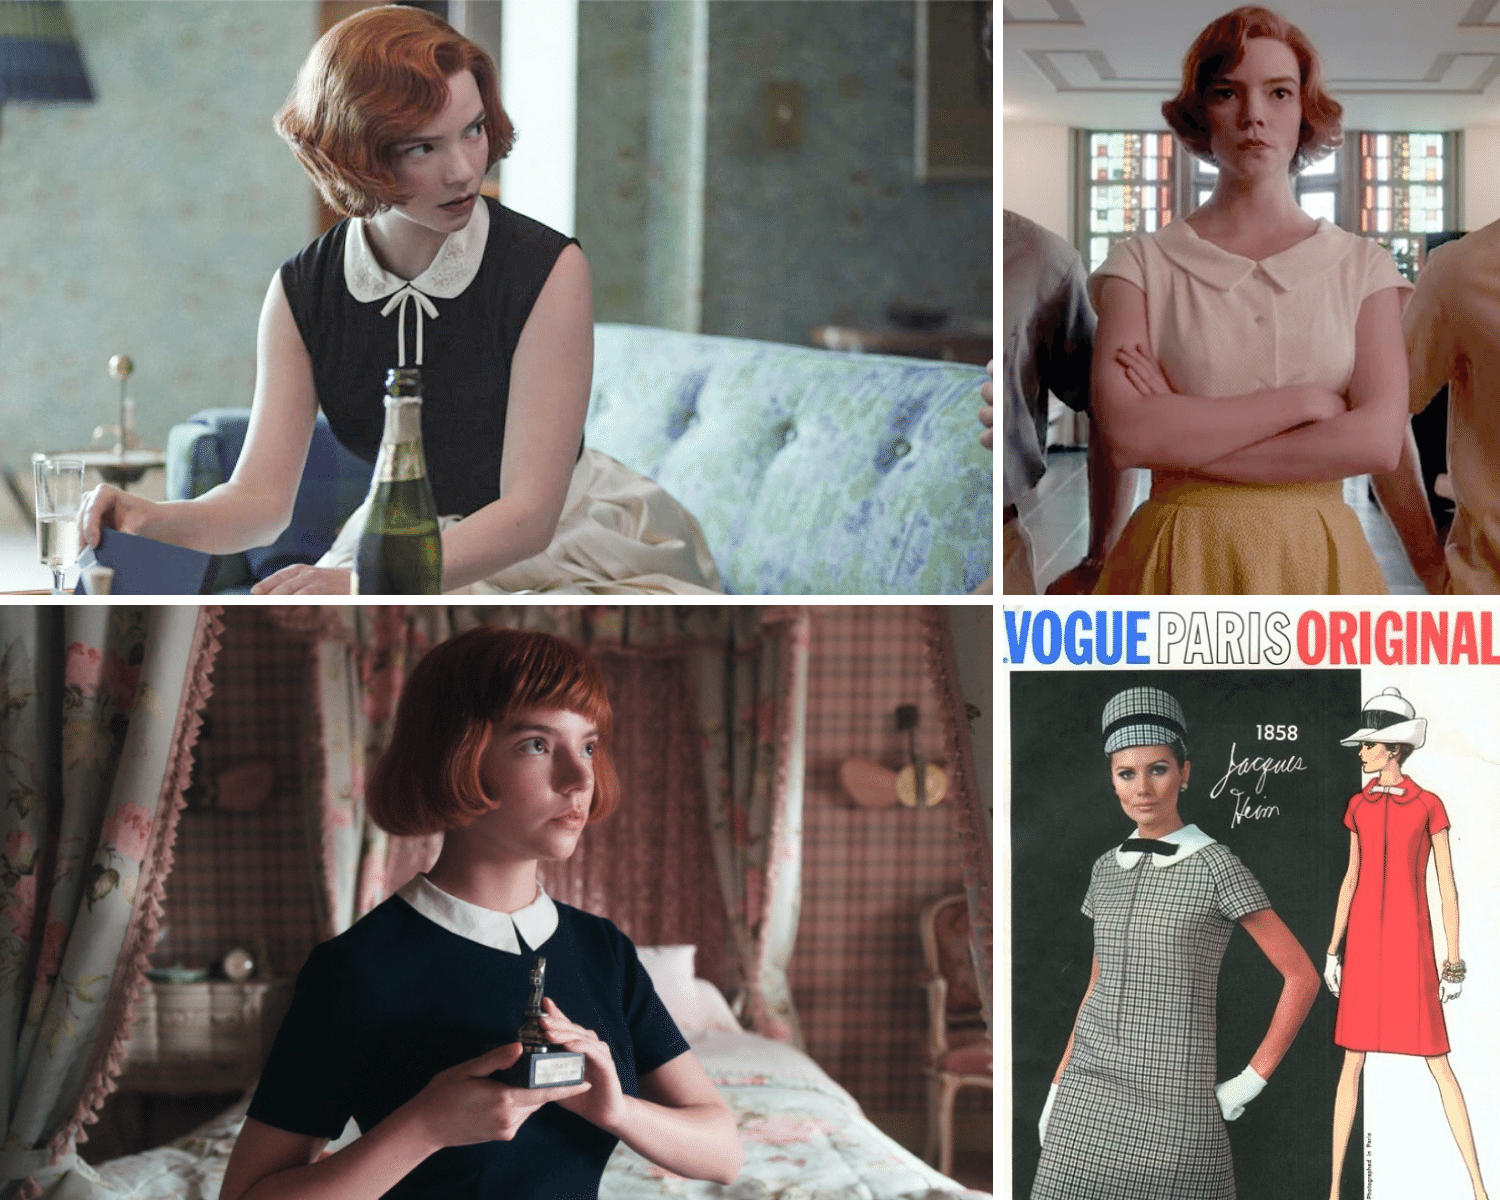 60's Peter Pan Collars | Here's where to buy queens gambit clothes/outfits | Beth Harmon's Most Iconic Outfits | Queen's Gambit Style Guide: How to Wear Beth Harmon's '60s Fashion Outfits in 2021 | Muse Boutique Outlet